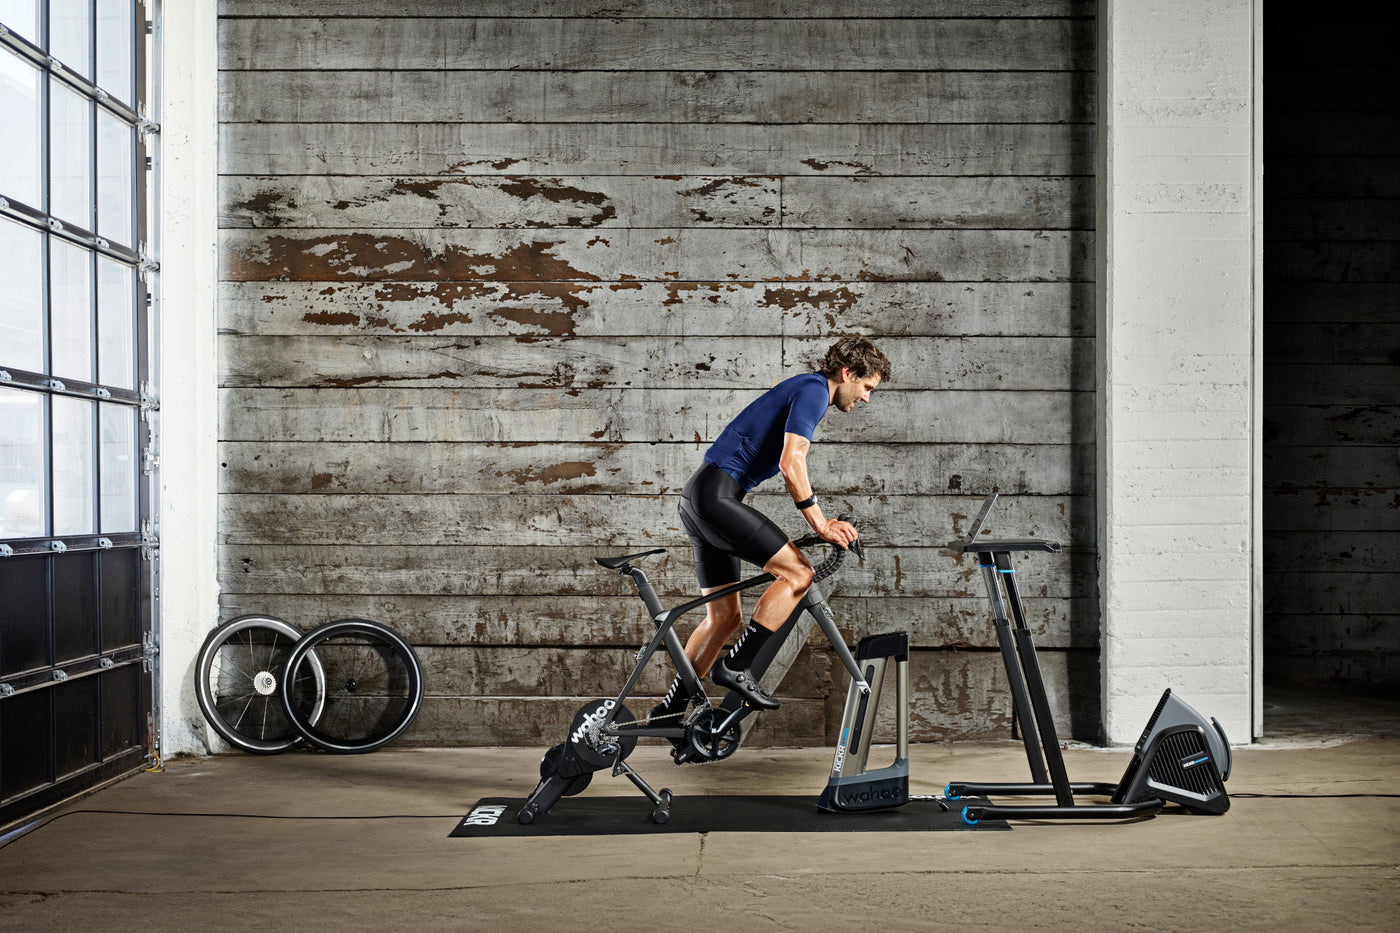 Wahoo Kickr, Kickr Climb, and Kickr Bike Desk